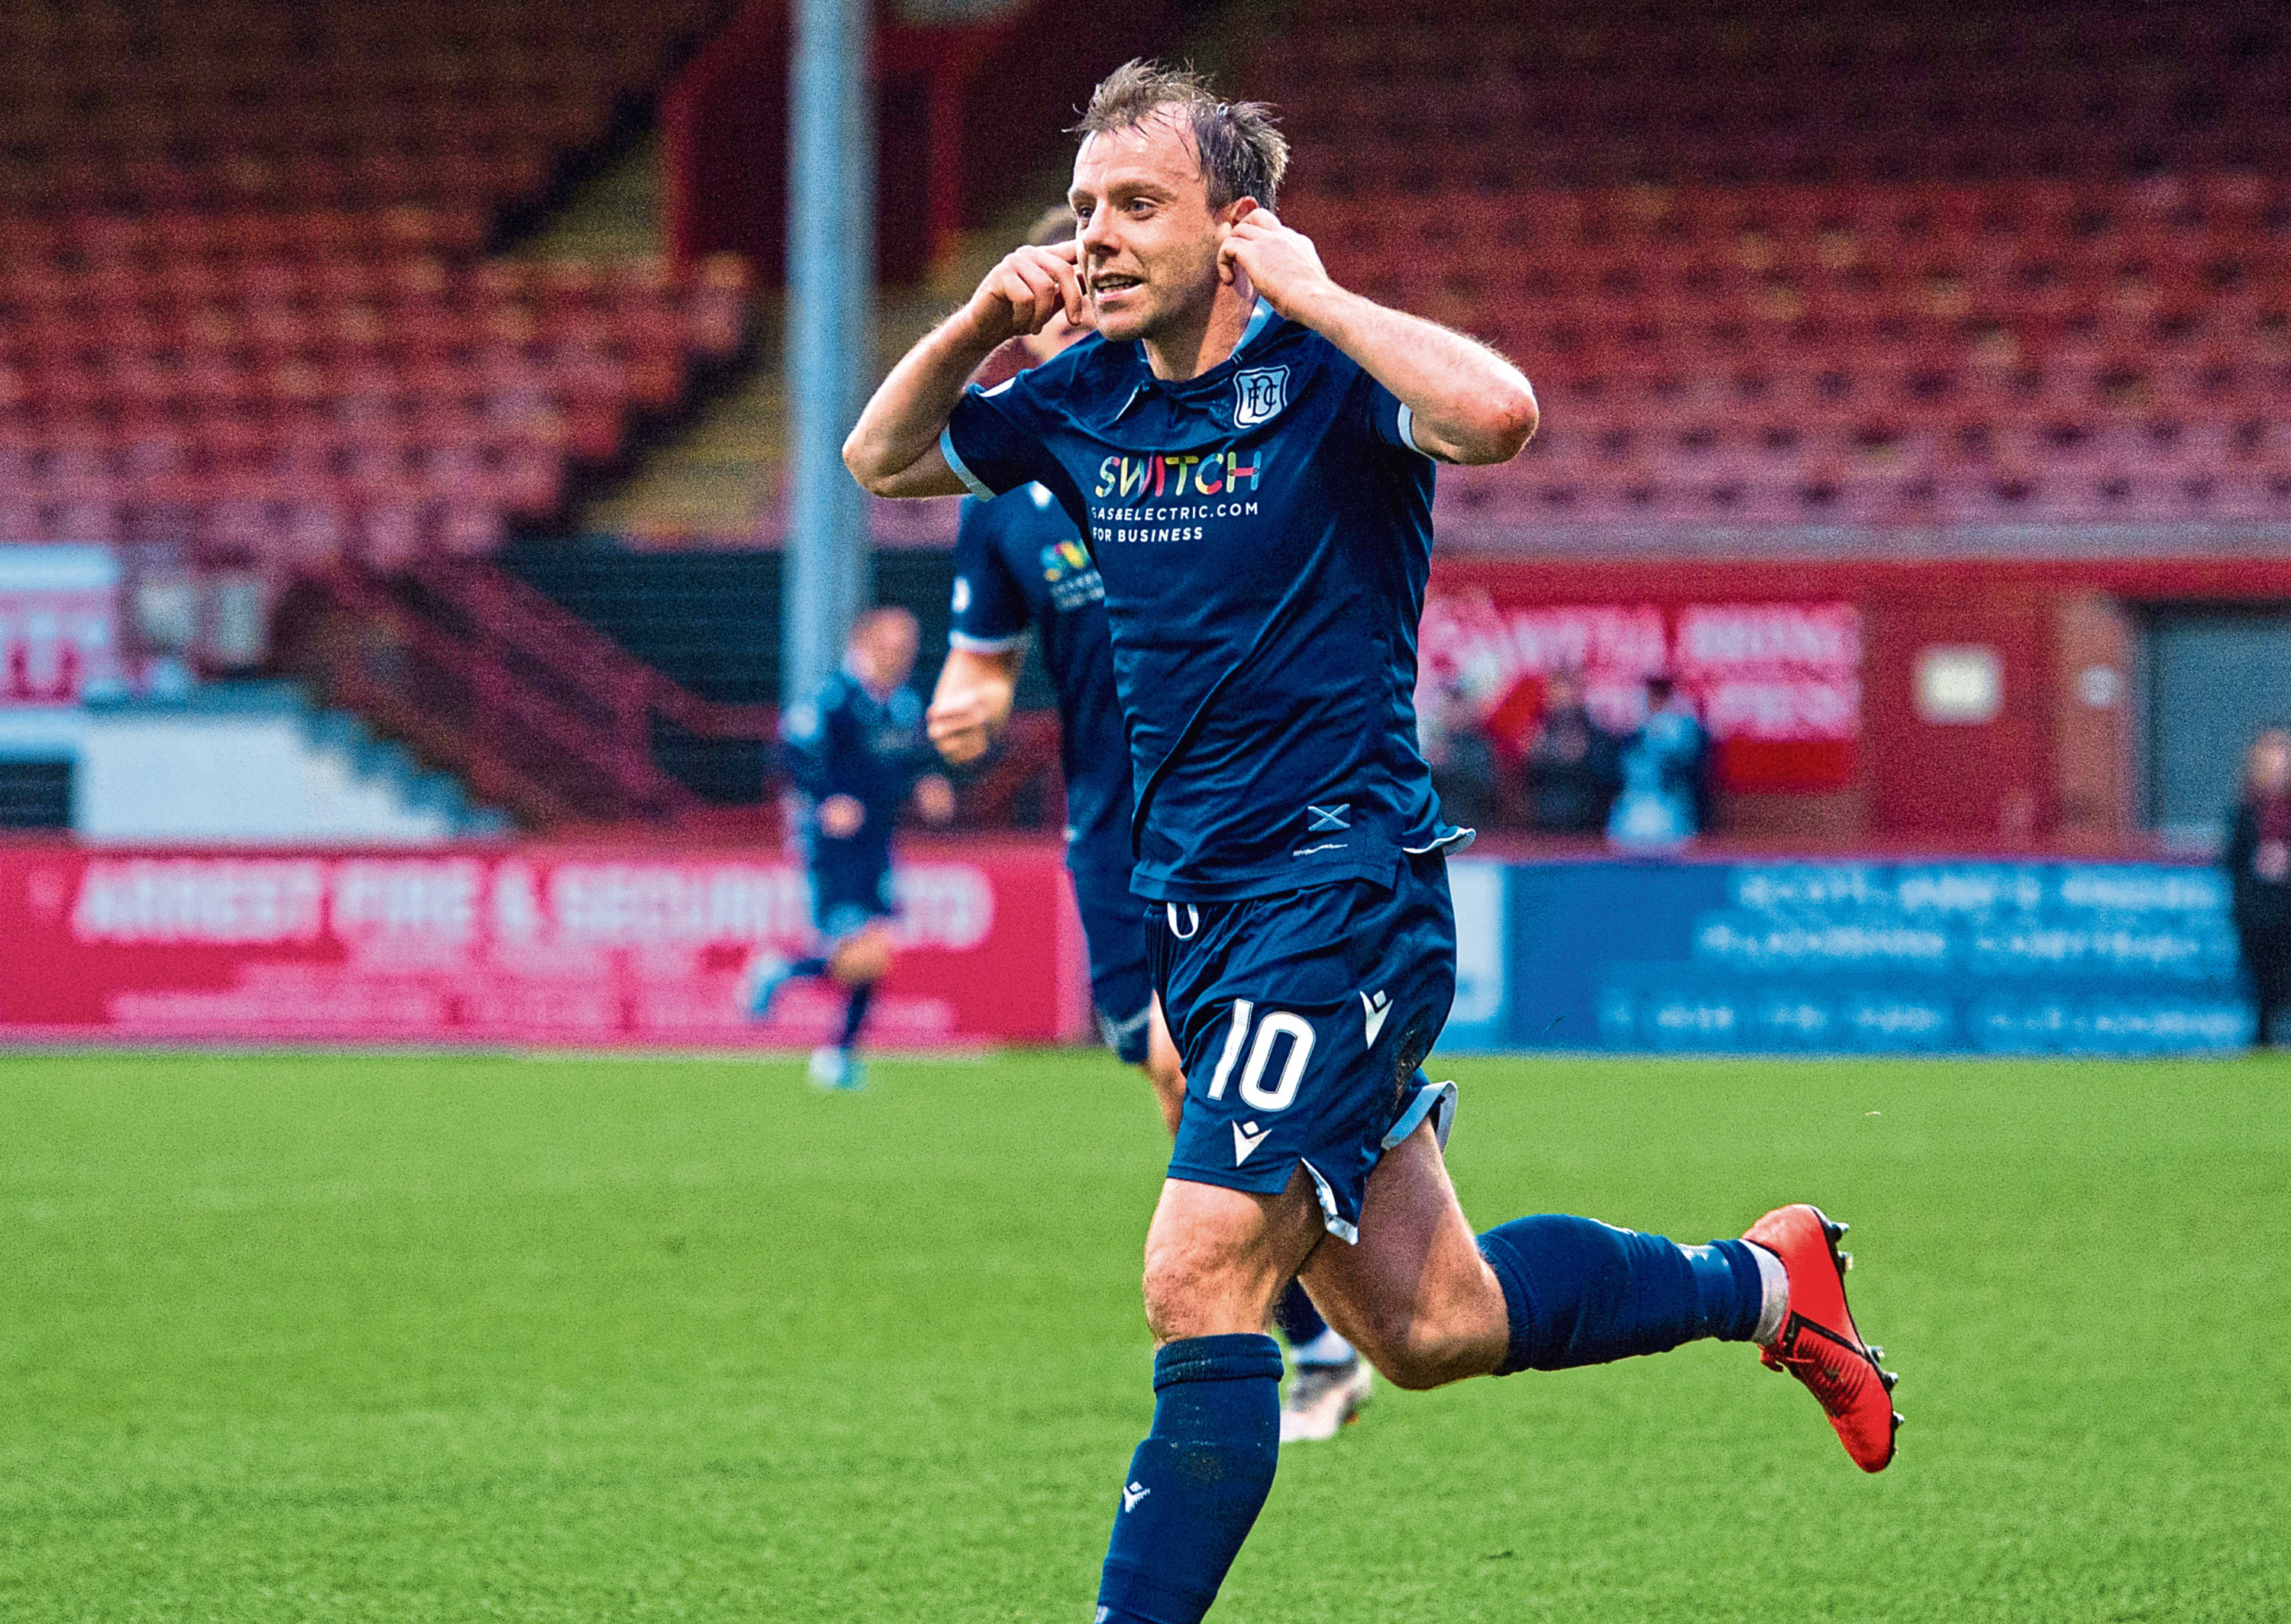 GLASGOW, SCOTLAND - DECEMBER 21: Dundee's Paul McGowan celebrates his goal after scoring to make it 1-0 during a Ladbrokes Championship match between Partick Thistle and Dundee, at Firhill Stadium, on December 21, 2019, in Glasgow, Scotland. (Photo by Sammy Turner / SNS Group)